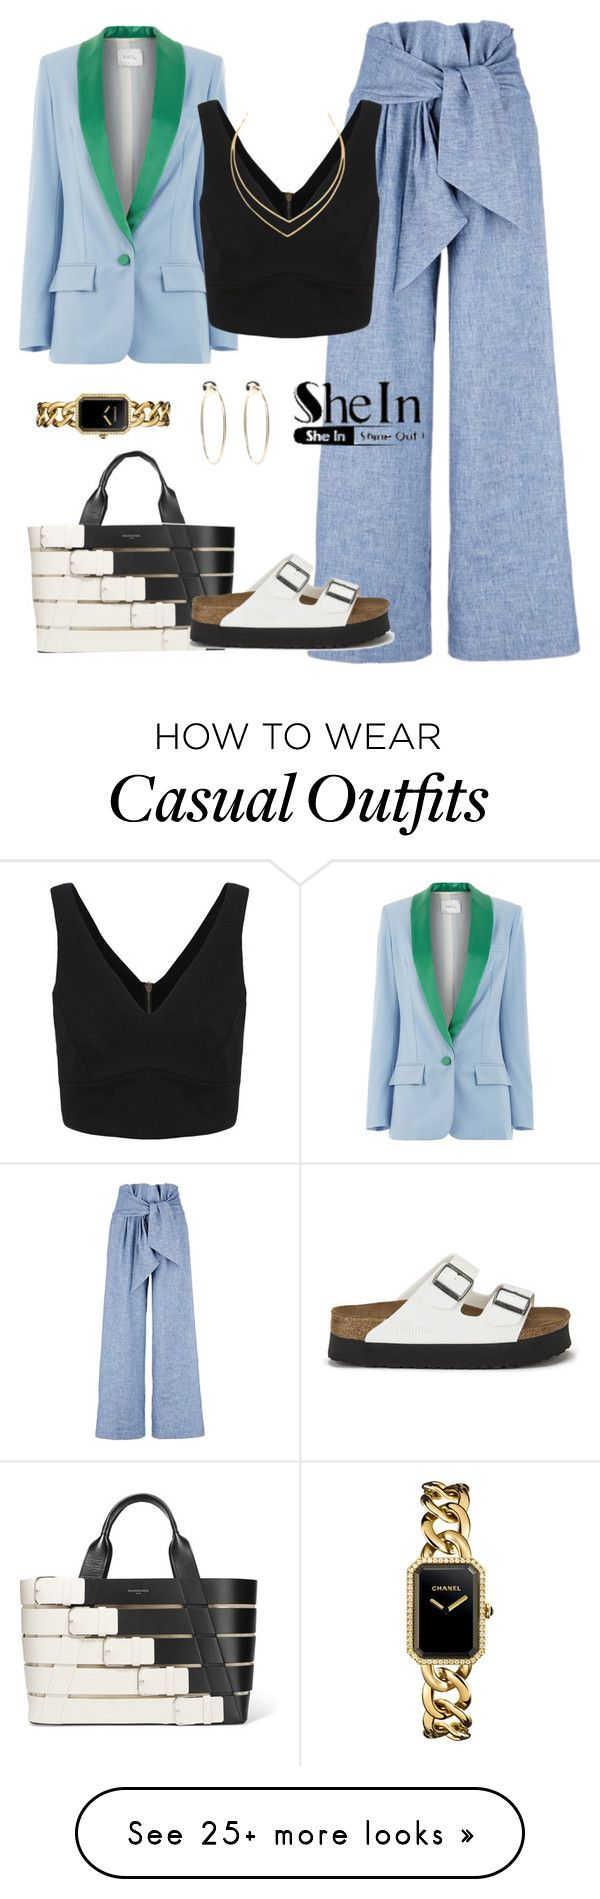 """""""Casual"""" by yinggao on Polyvore featuring Racil, MSGM, Balenciaga, Birkenstock, Bebe, Chanel, Lana, Sheinside, casualoutfit and shein"""